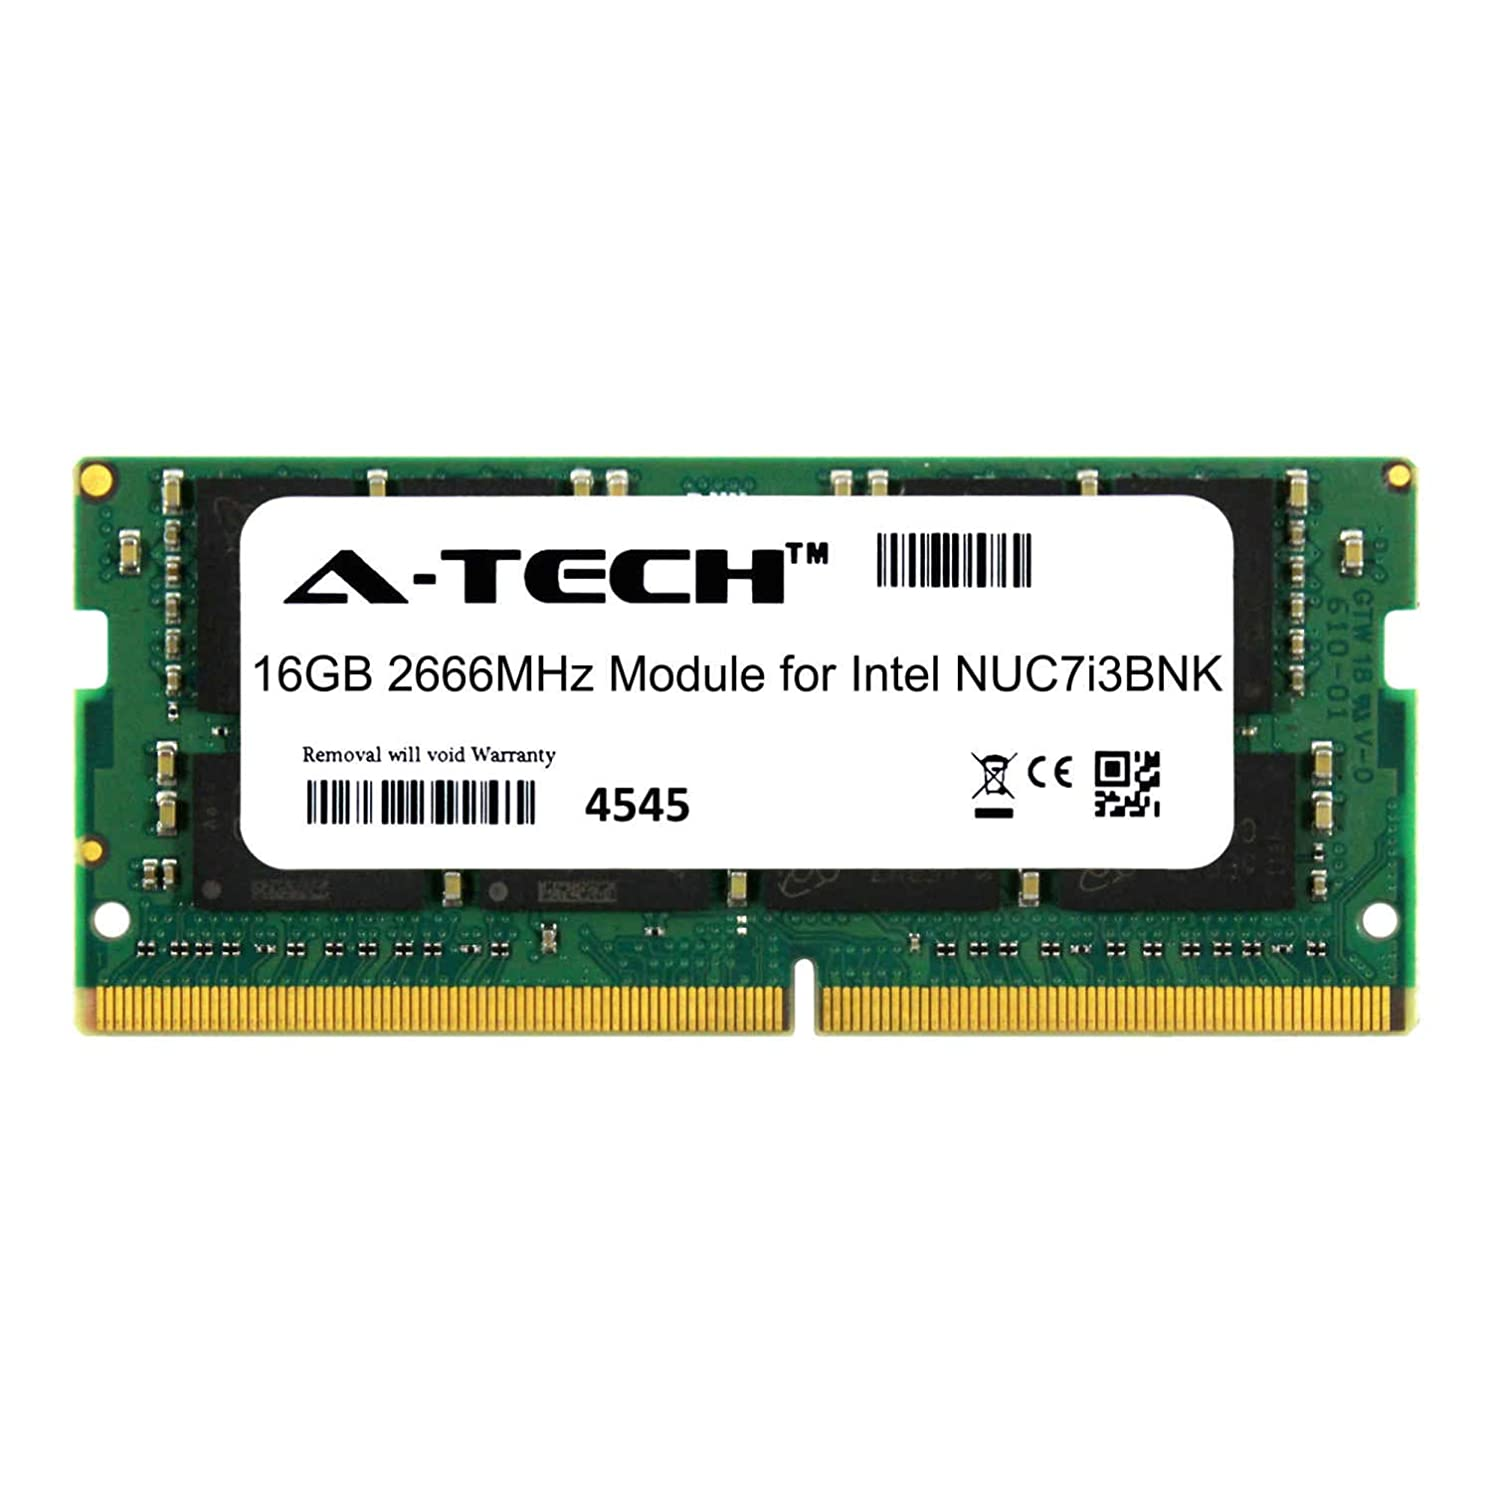 A-Tech 16GB Module for Intel NUC7i3BNK Laptop & Notebook Compatible DDR4 2666Mhz Memory Ram (ATMS370338A25832X1)